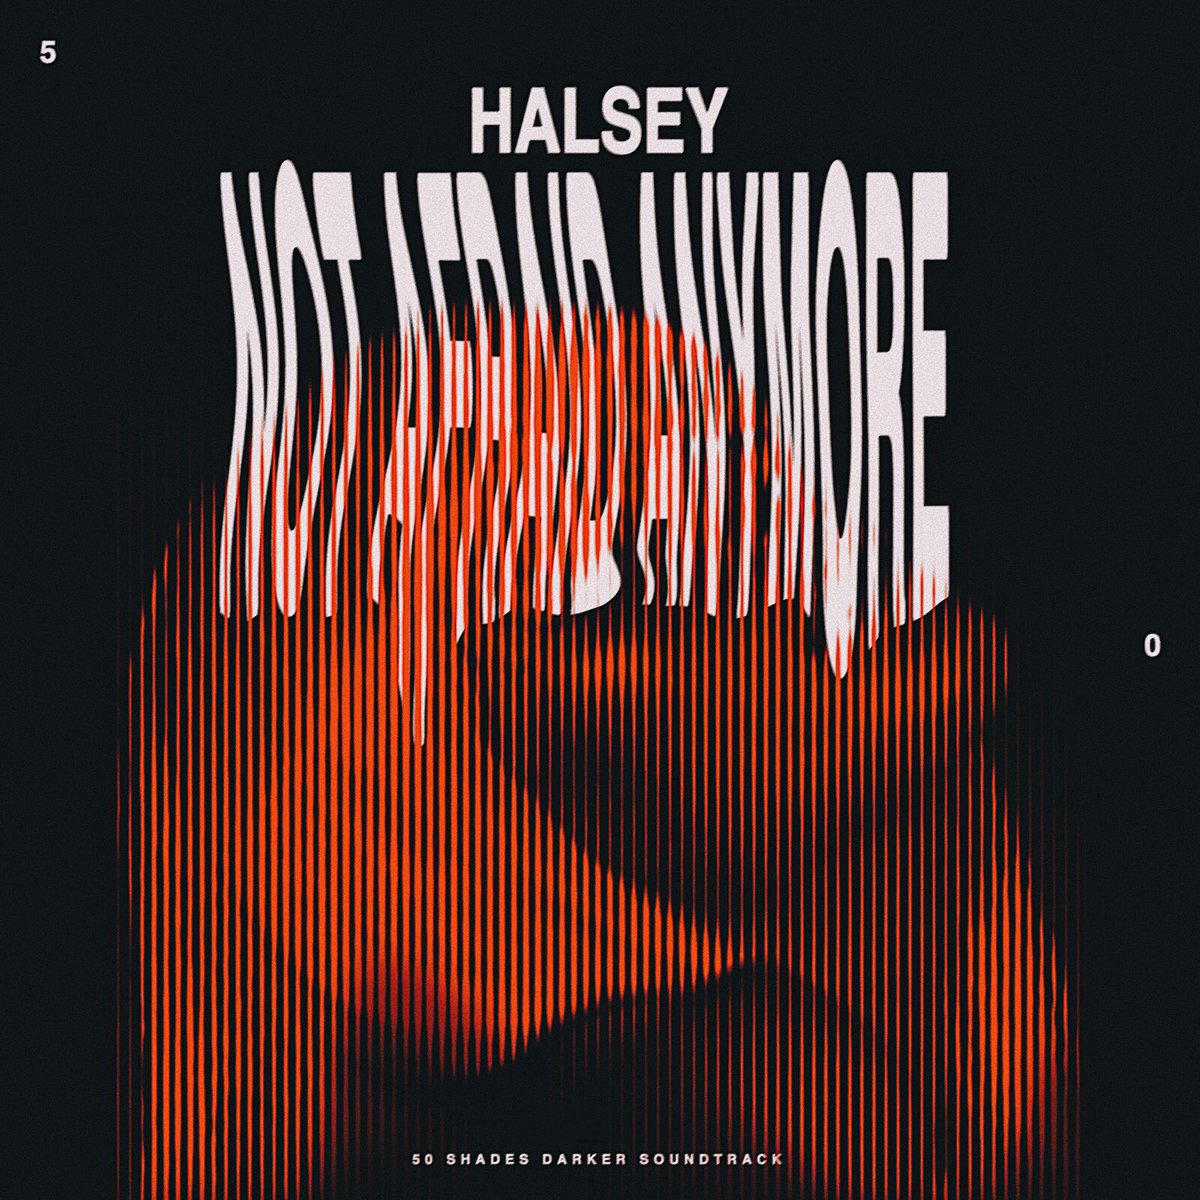 halsey singles & personals Halsey and g-eazy first sparking dating rumors in august of last year since then, they have been heavily featured on each other's instagram pages.